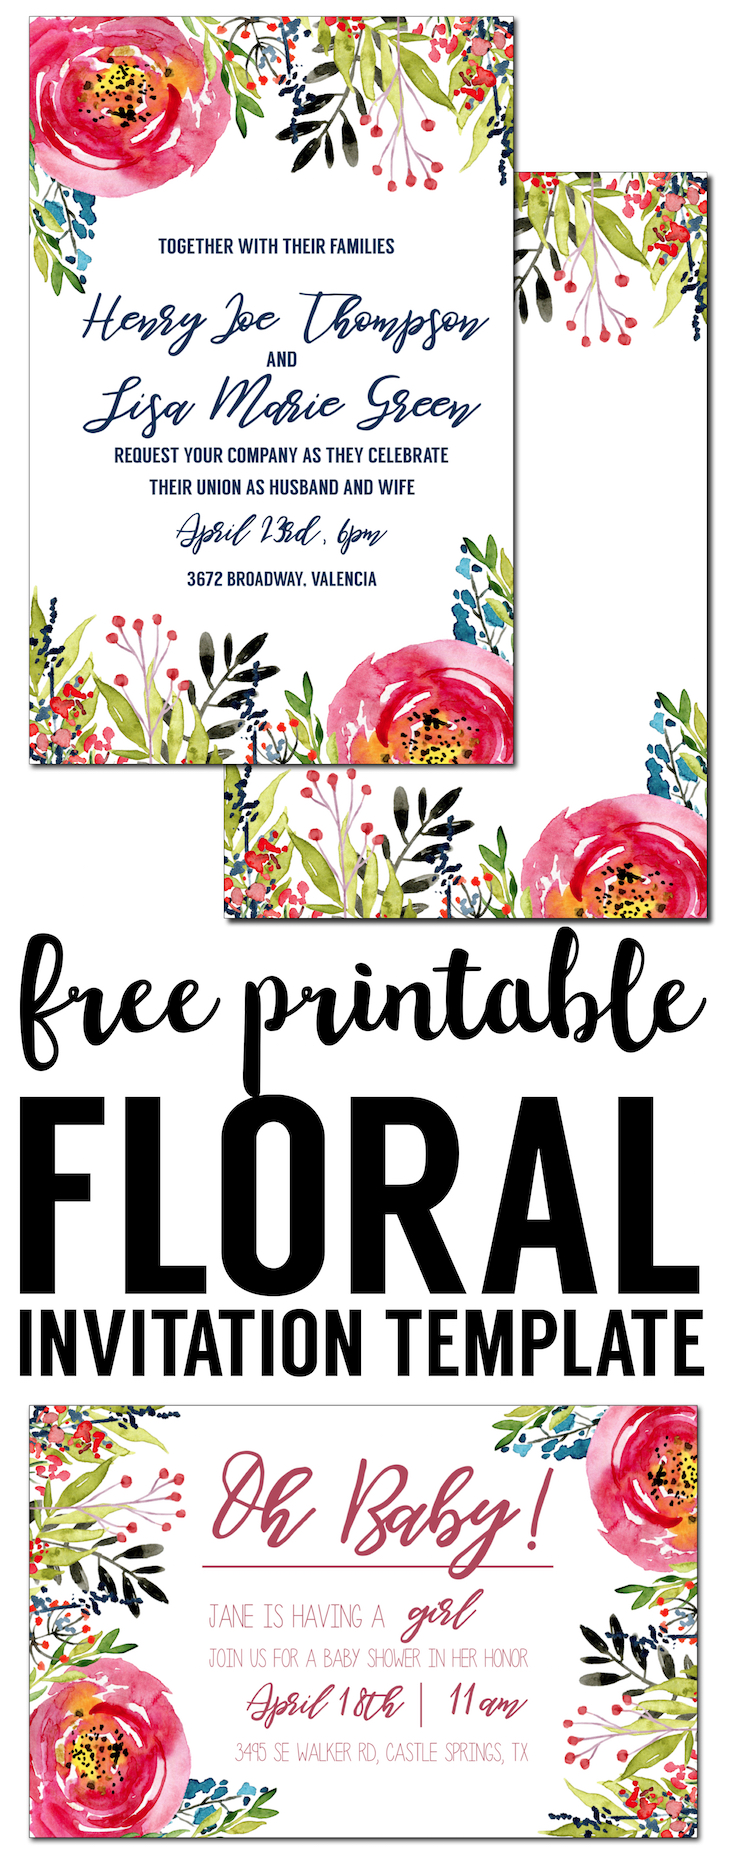 Floral Invitation Template free printable Paper Trail Design – Invitations Birthday Party Free Printable